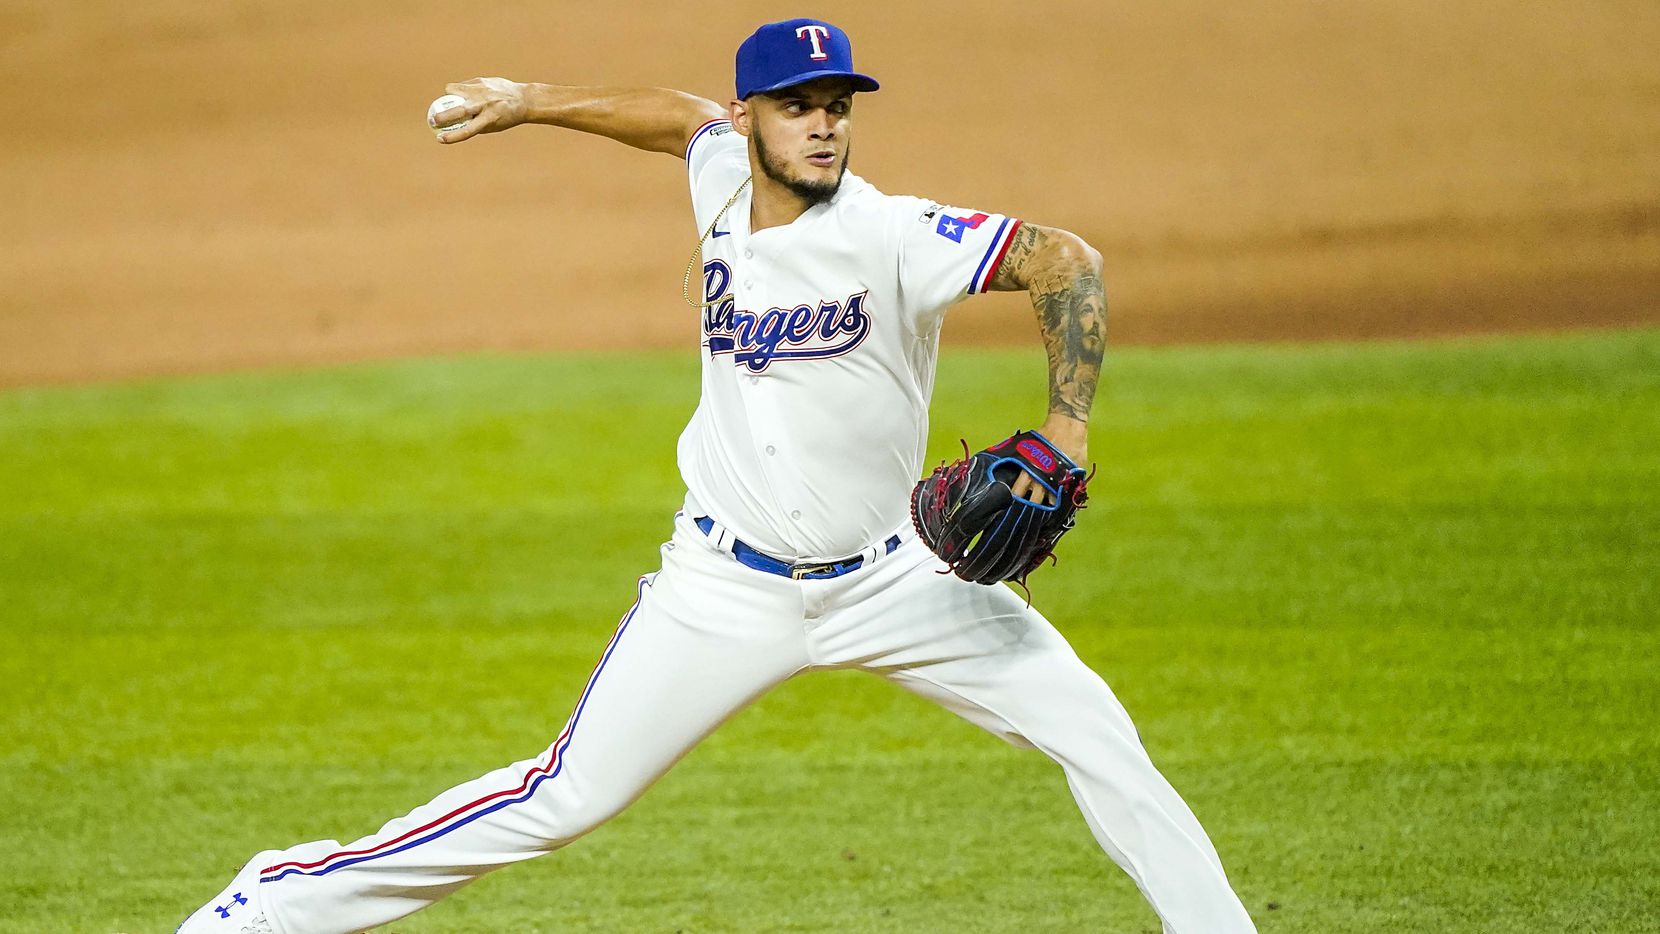 Texas Rangers pitcher Jonathan Hernandez pitches during the eighth inning against the Colorado Rockies on opening day at Globe Life Field on Friday, July 24, 2020.